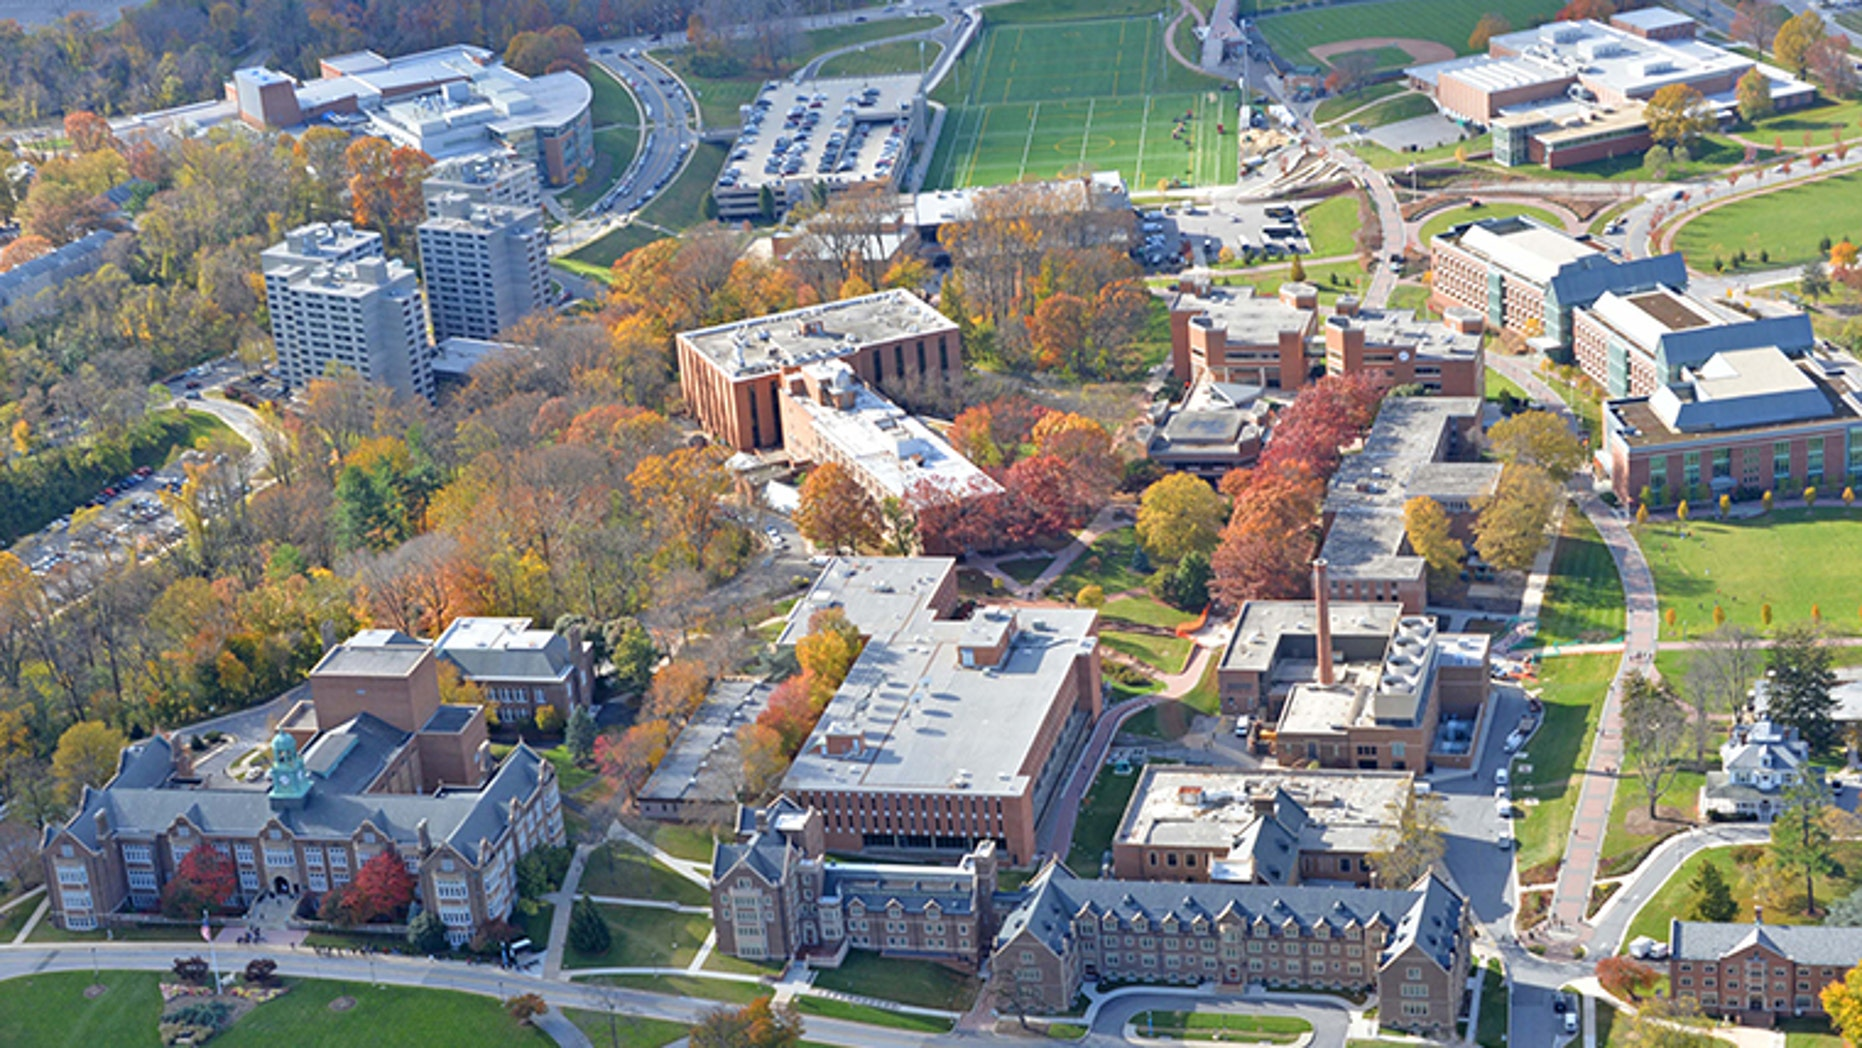 A view of Townson University in Maryland